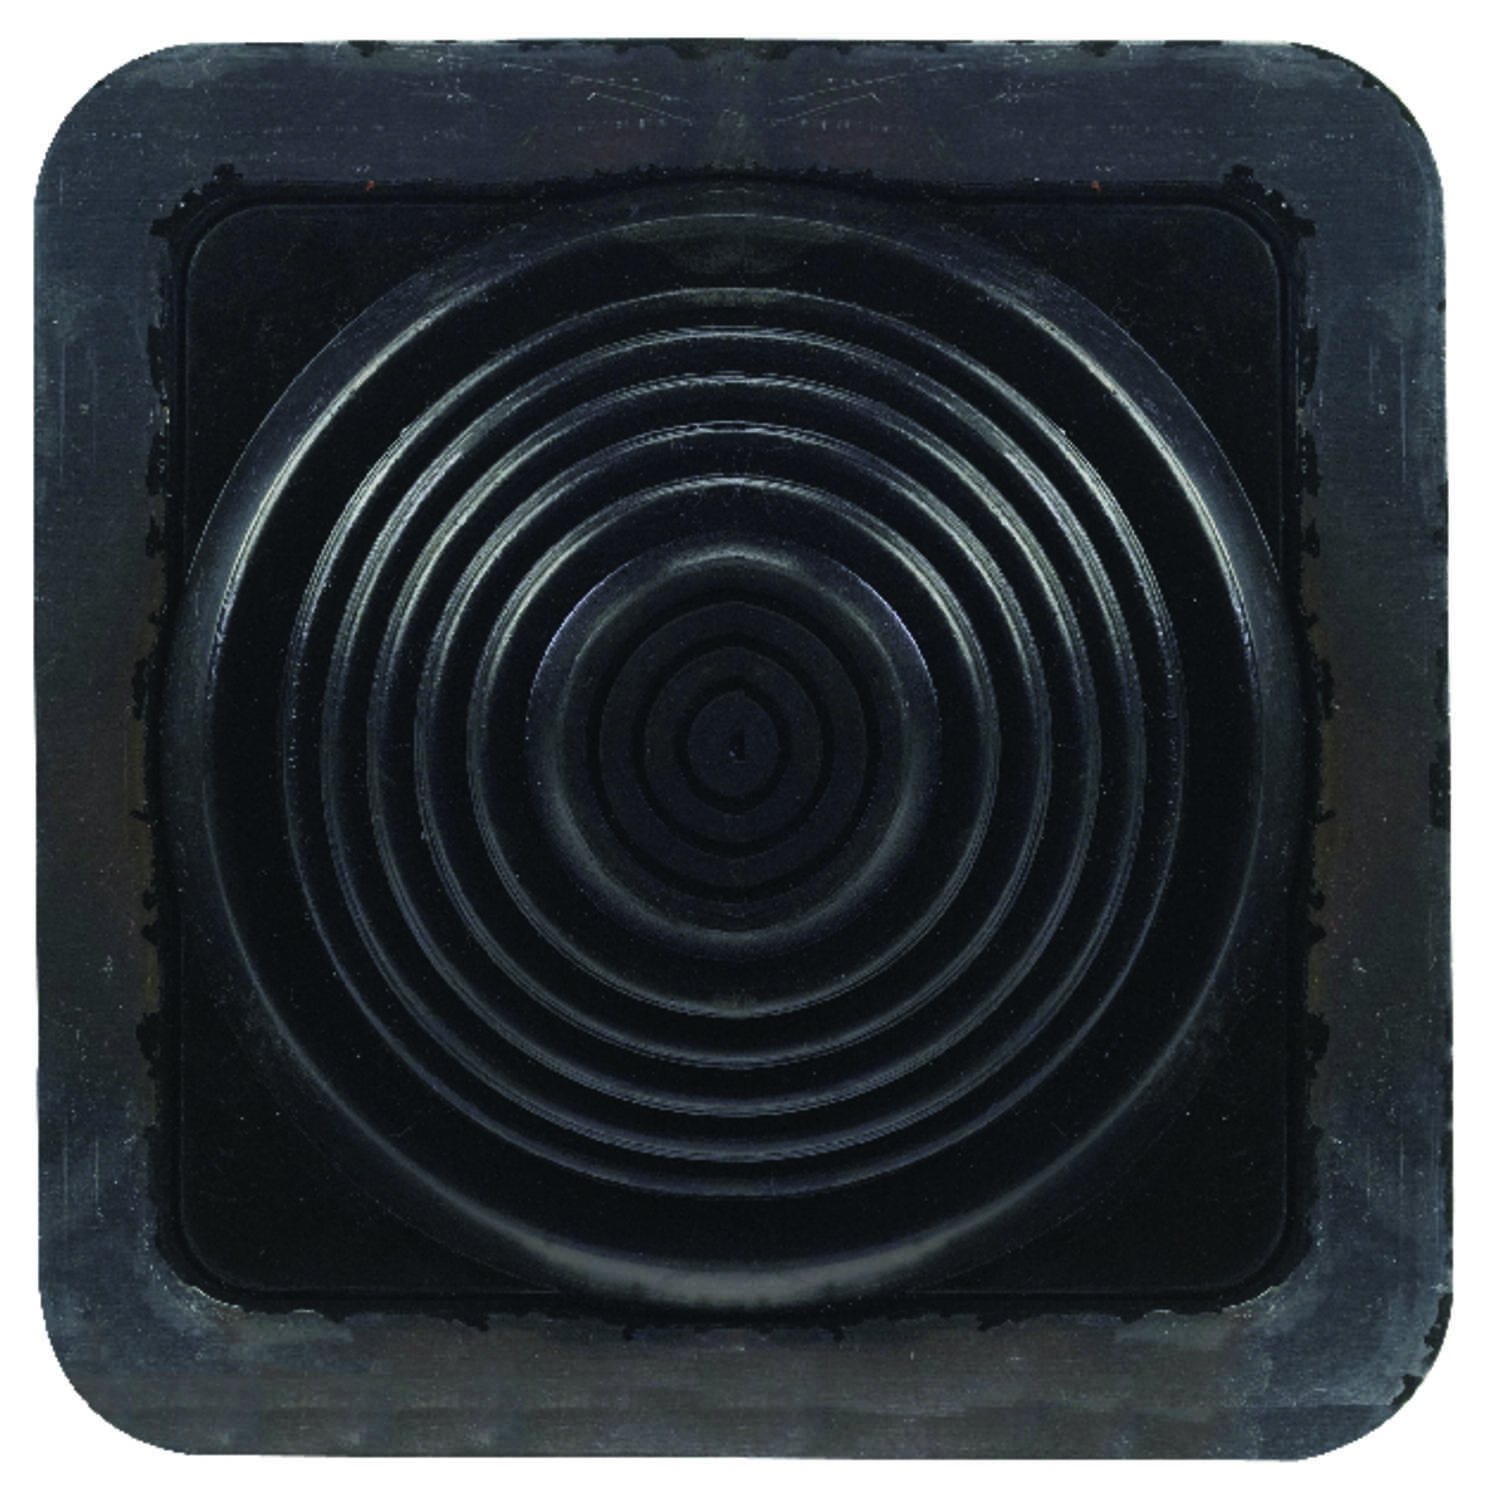 Oatey  Master Flash  1/4 to 4 in. H x 8 in. W x 8 in. L Metal/Plastic/Rubber  Roof Flashing  Square